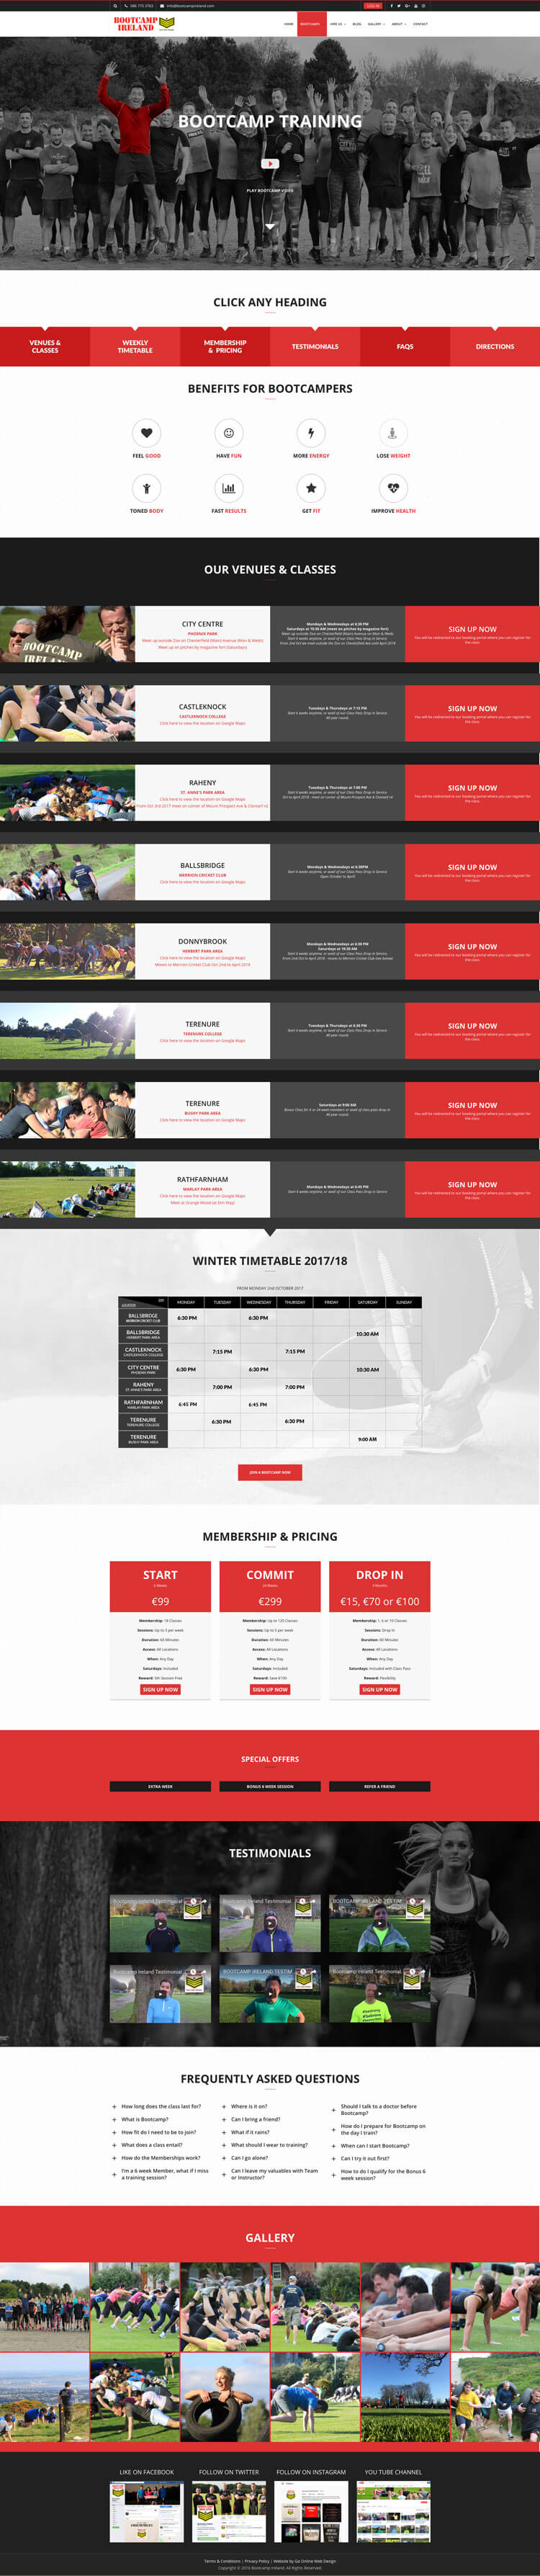 bootcamp training page web.jpg